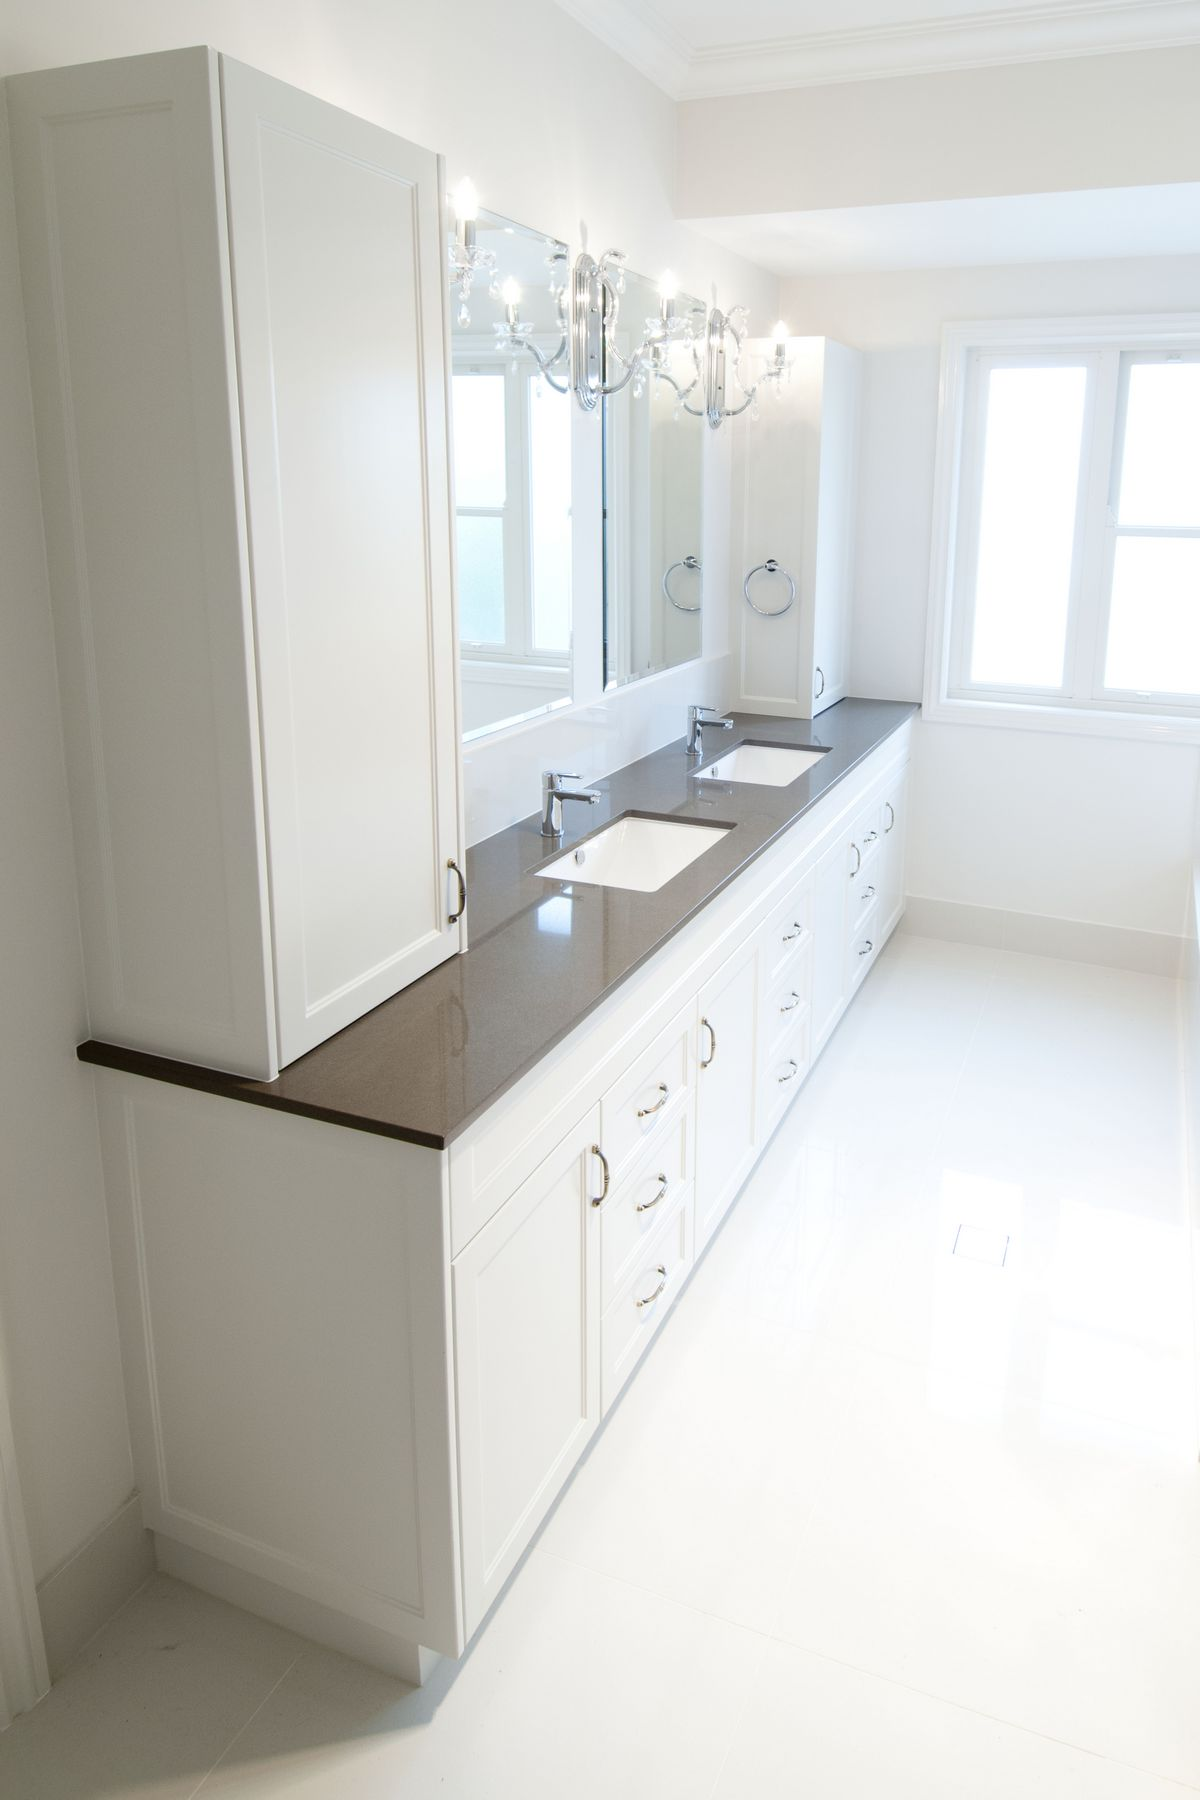 Traditional style vanity with double basin _ wall cabinetry on either side of vanity for ample storage